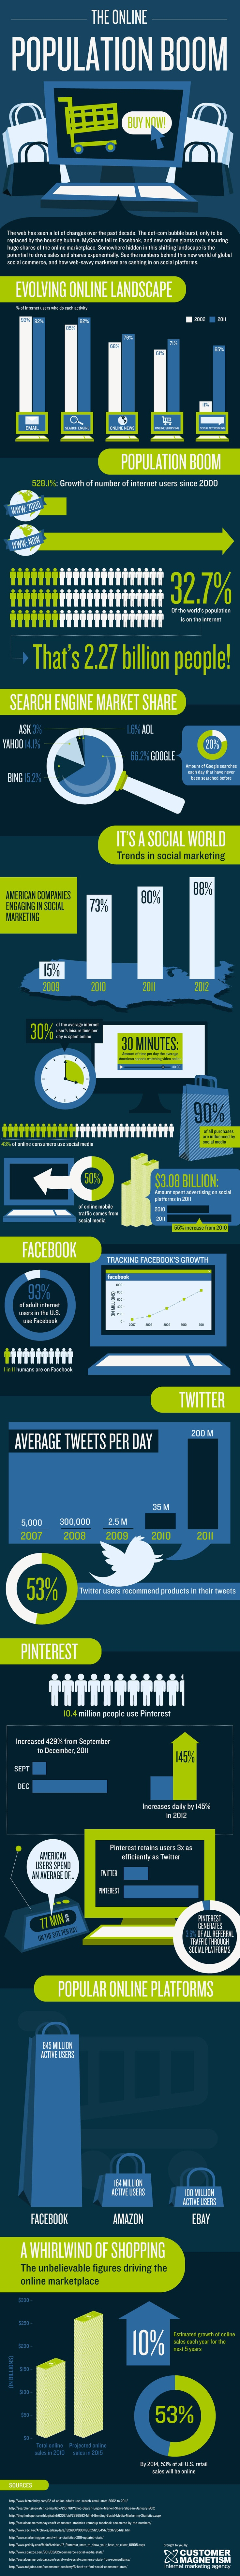 What Do We Do Online? #infographic #visual